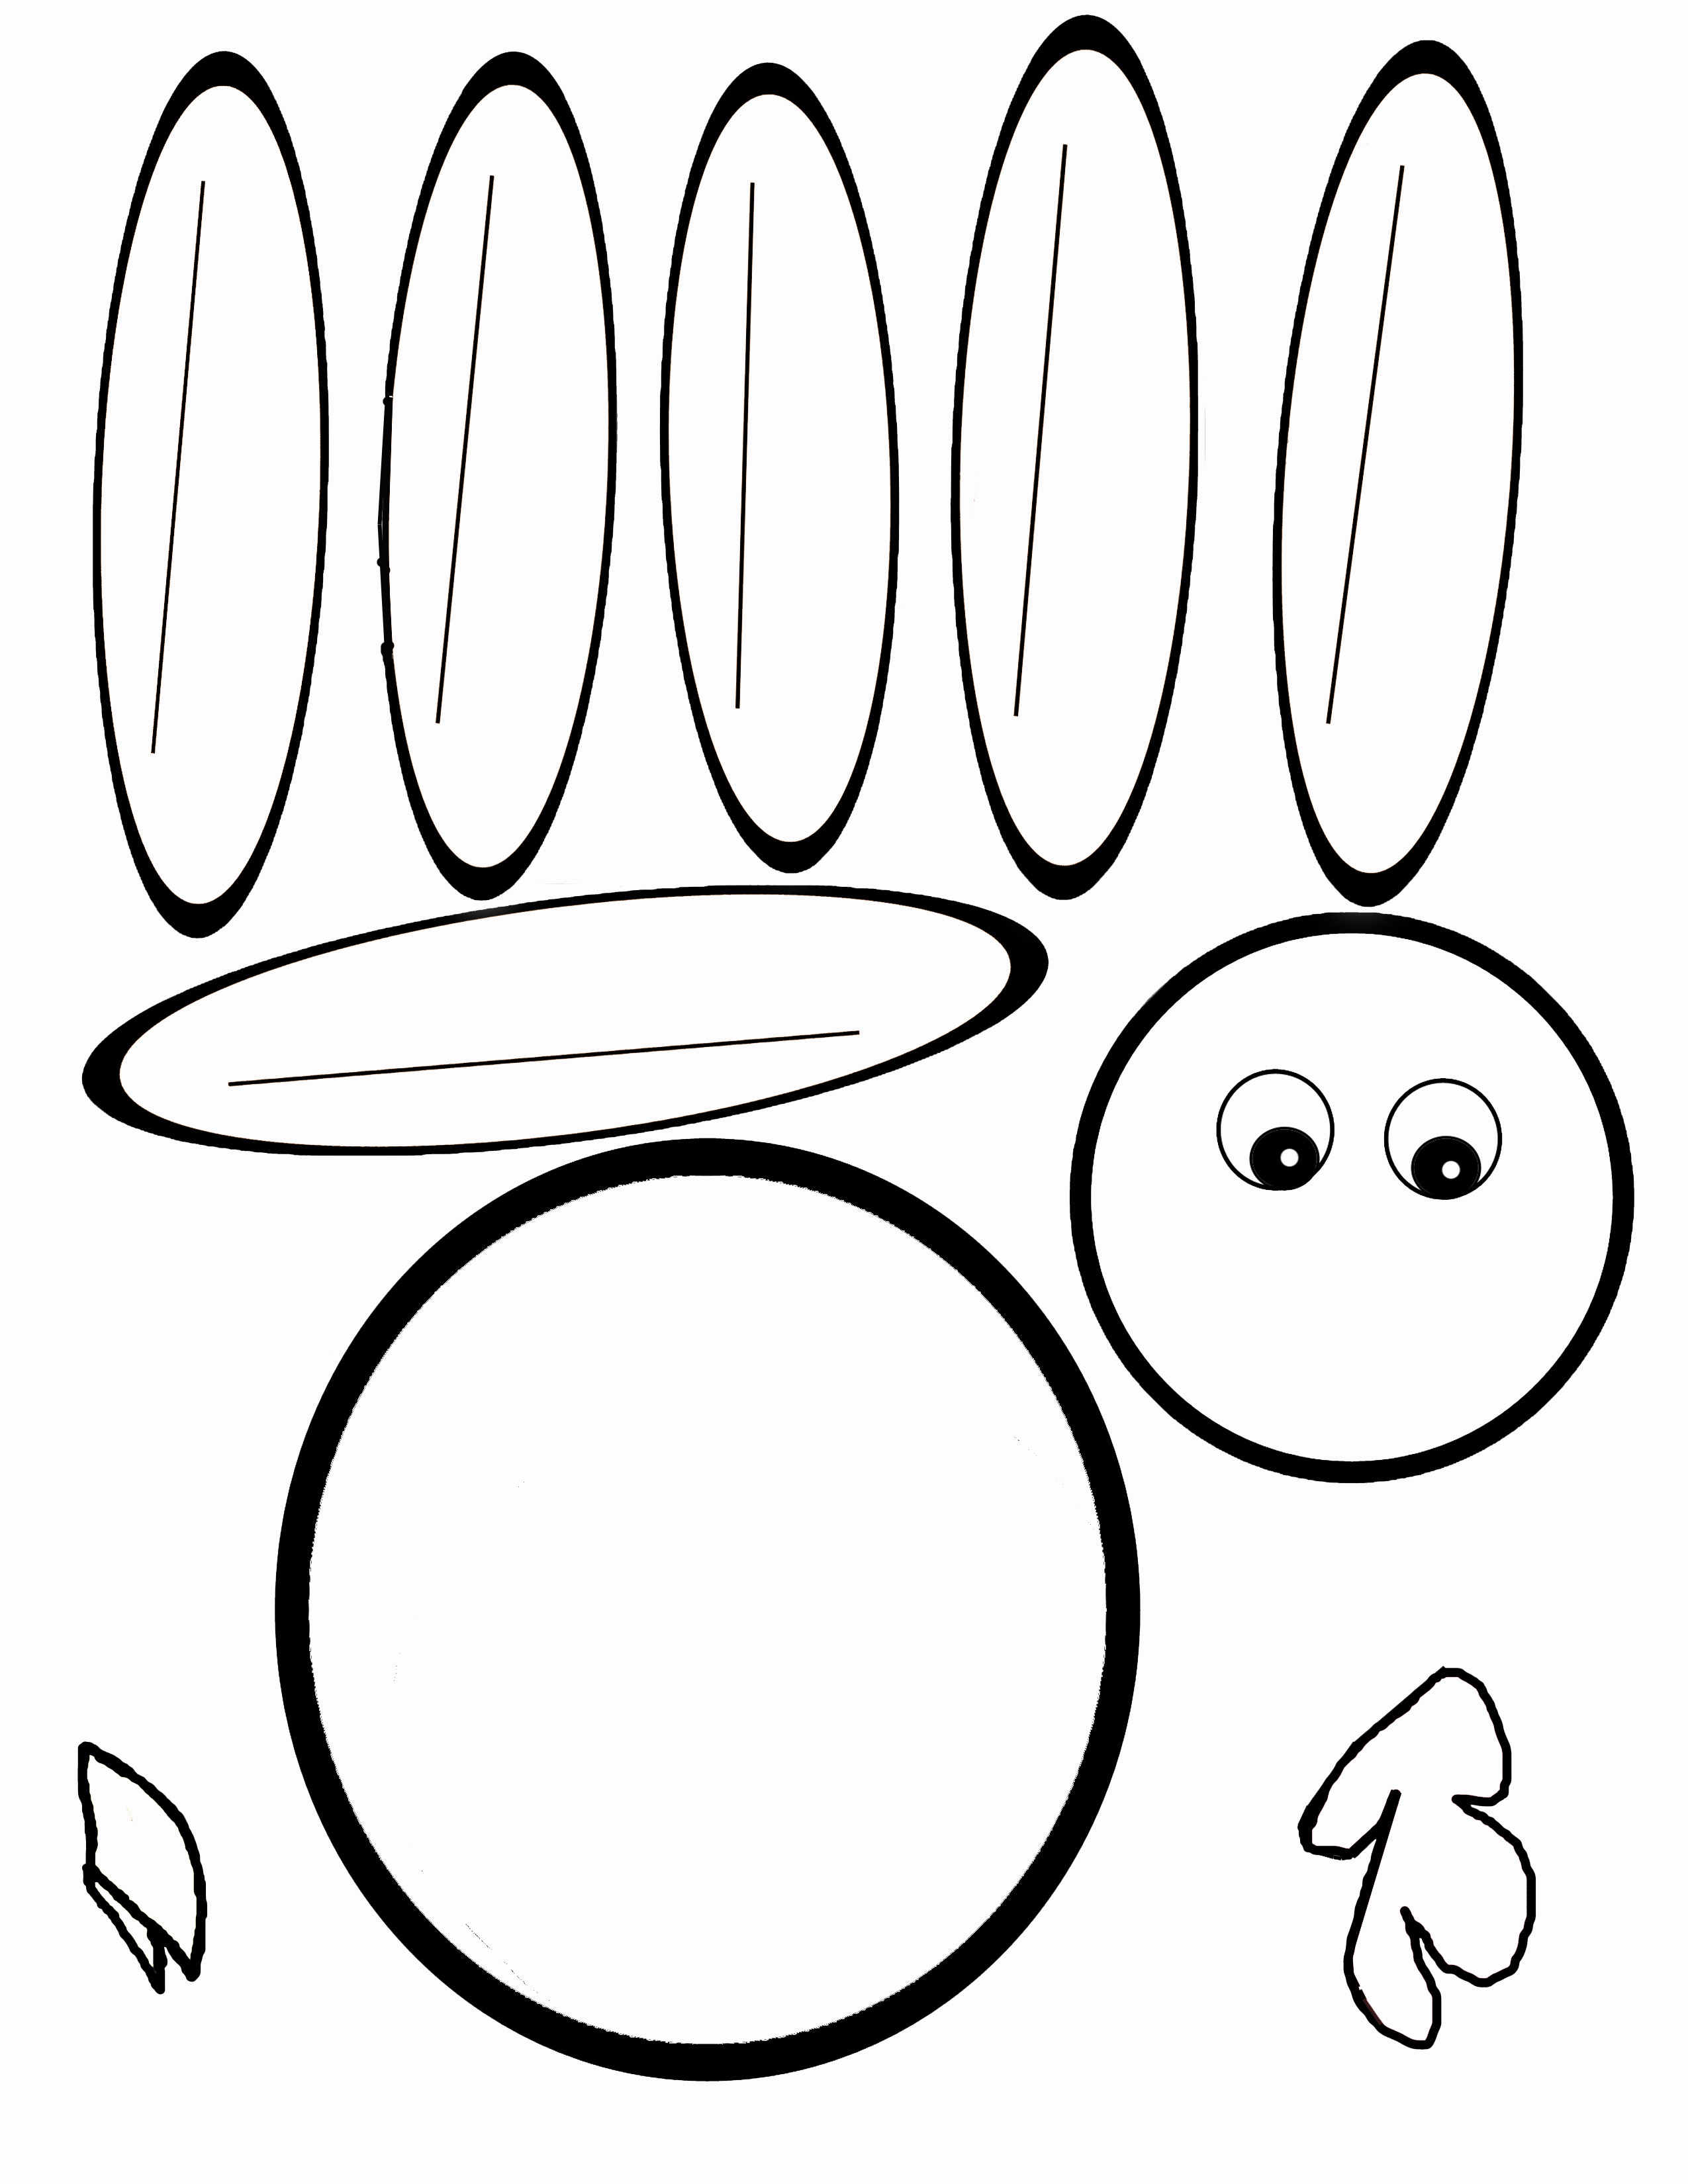 4 Images of Hand Turkey Template Printable